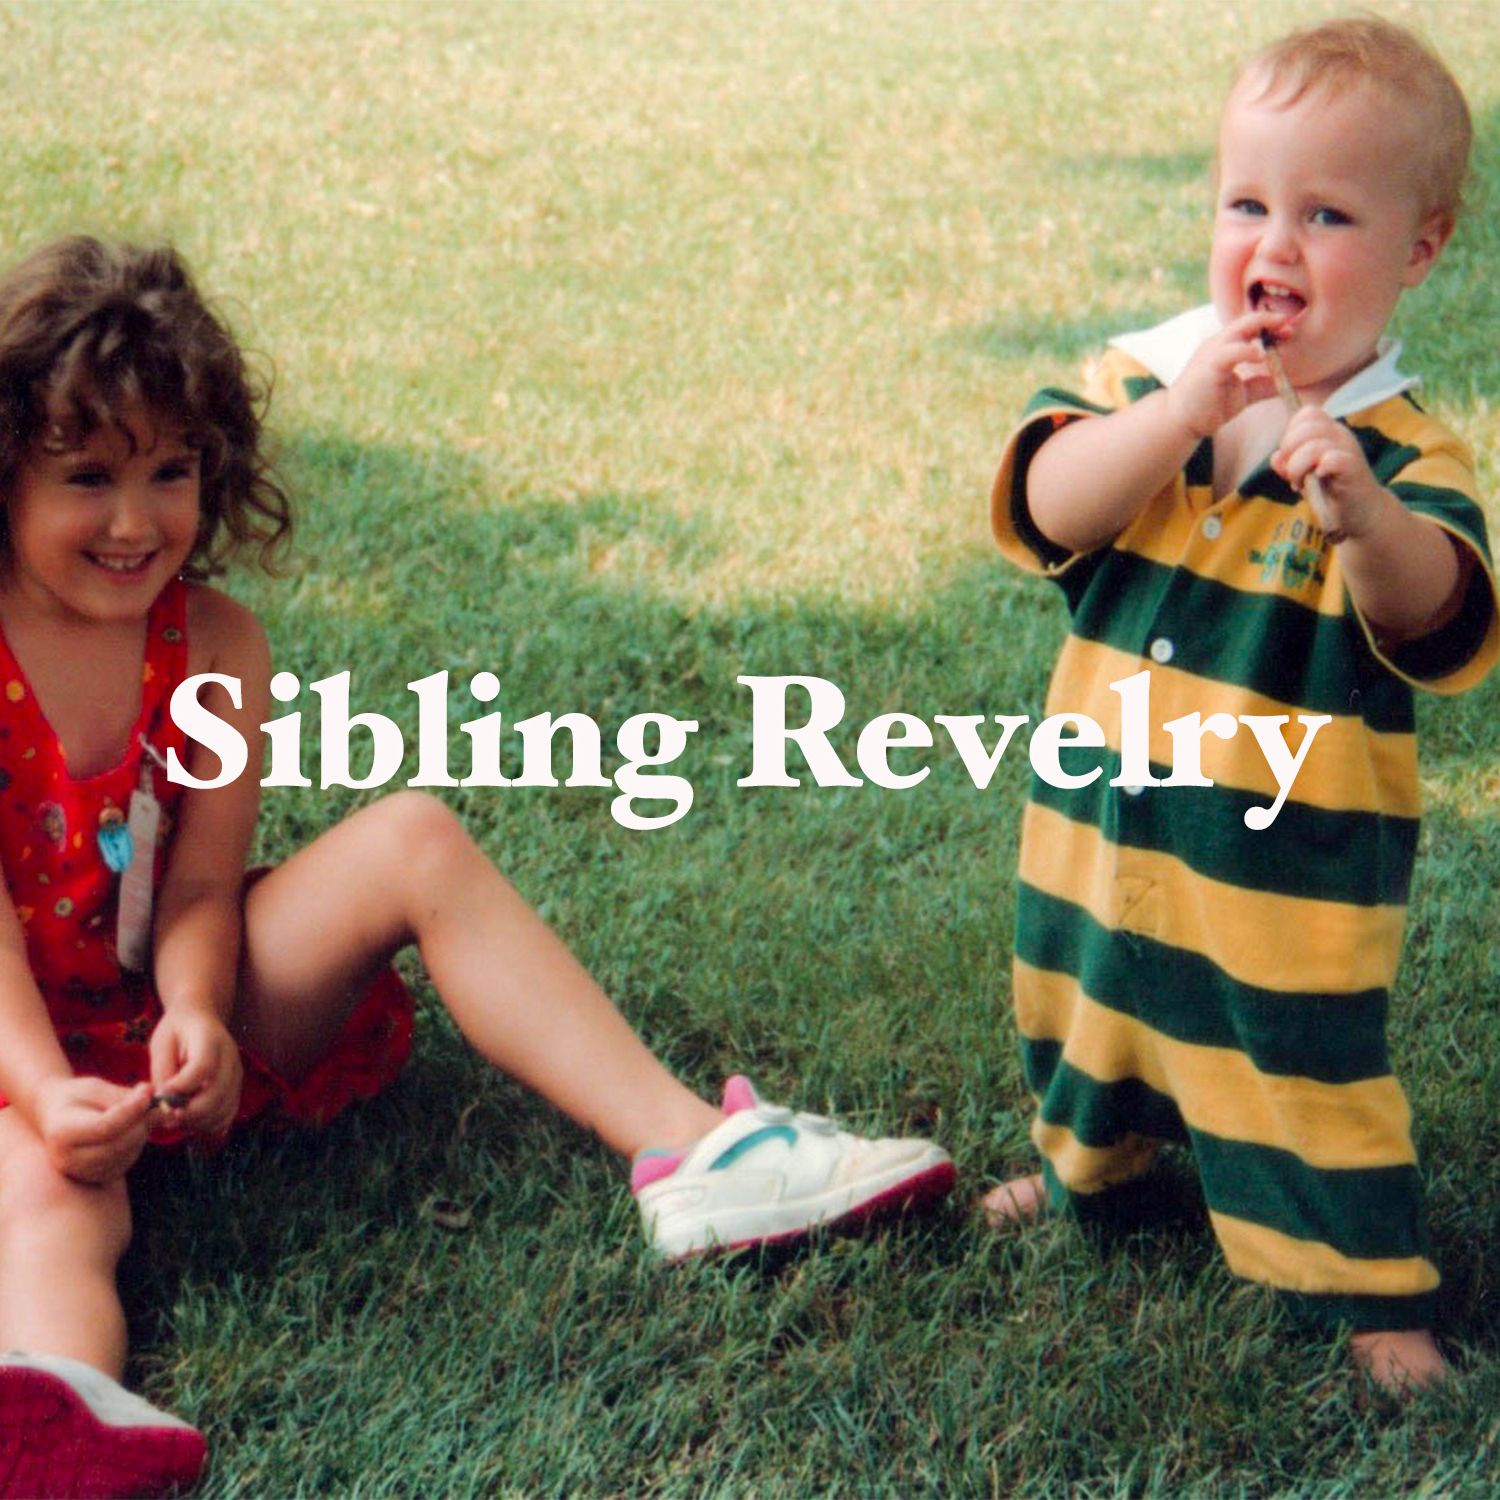 Sibling Revelry